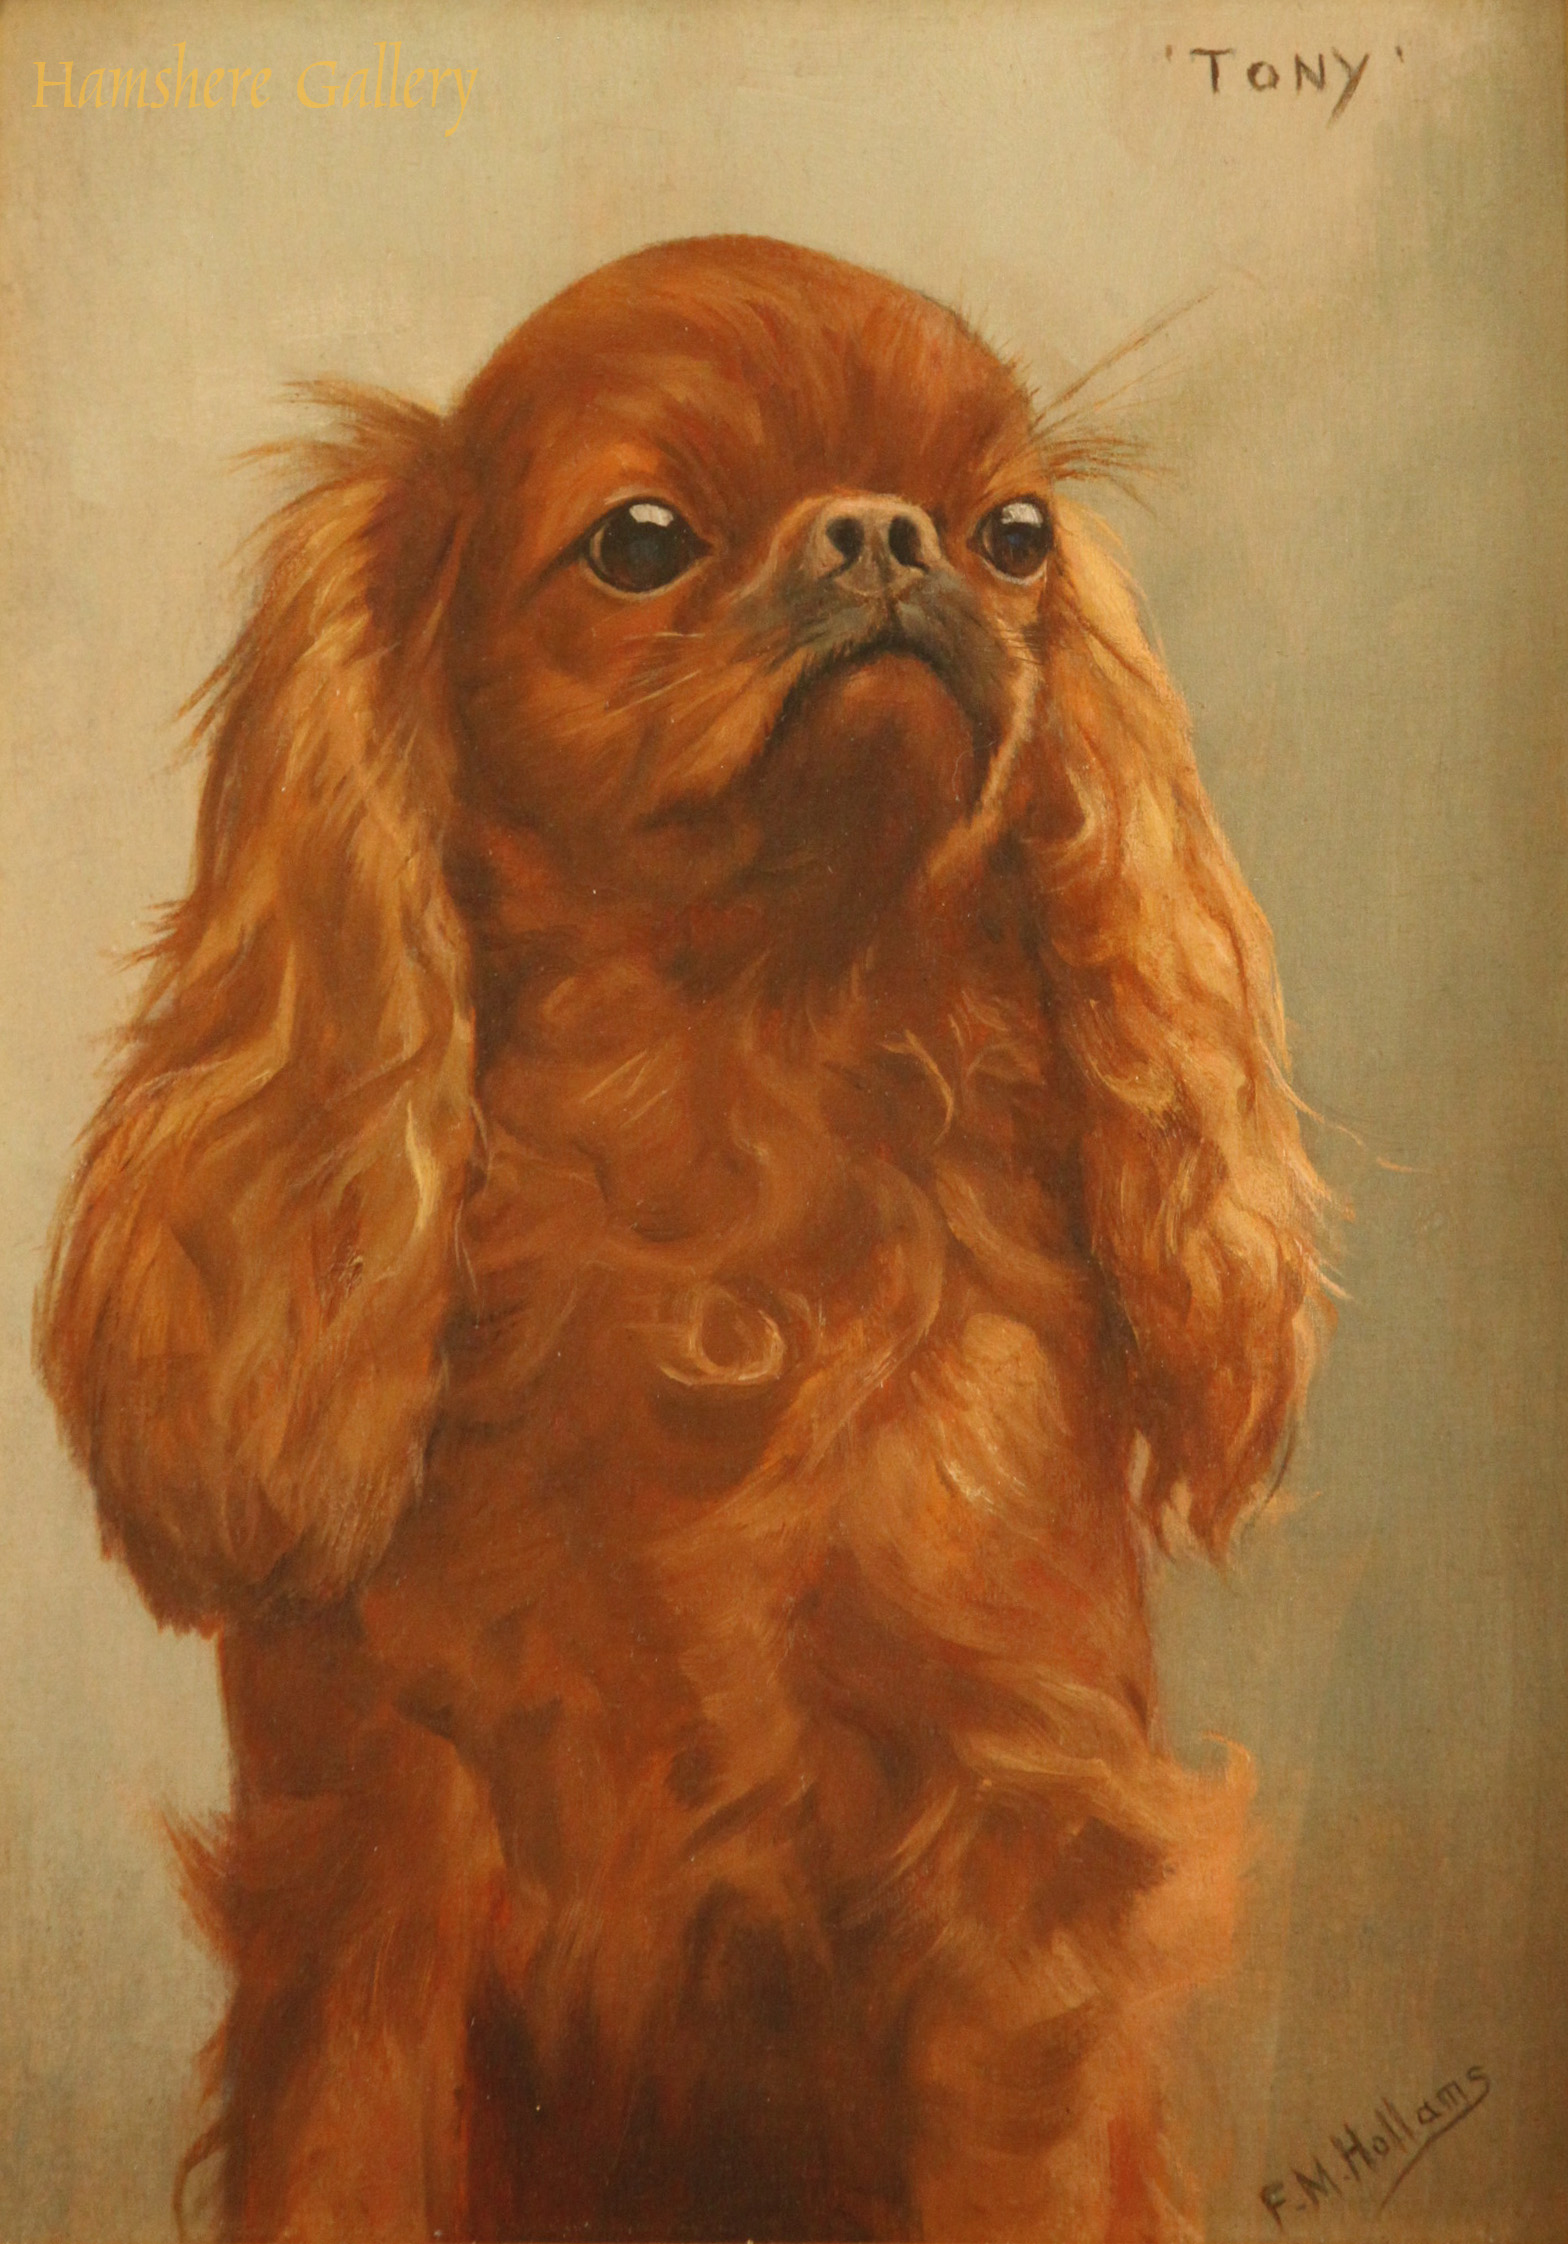 Click to see full size: King Charles Spaniel Tony Florence Mabel Hollams